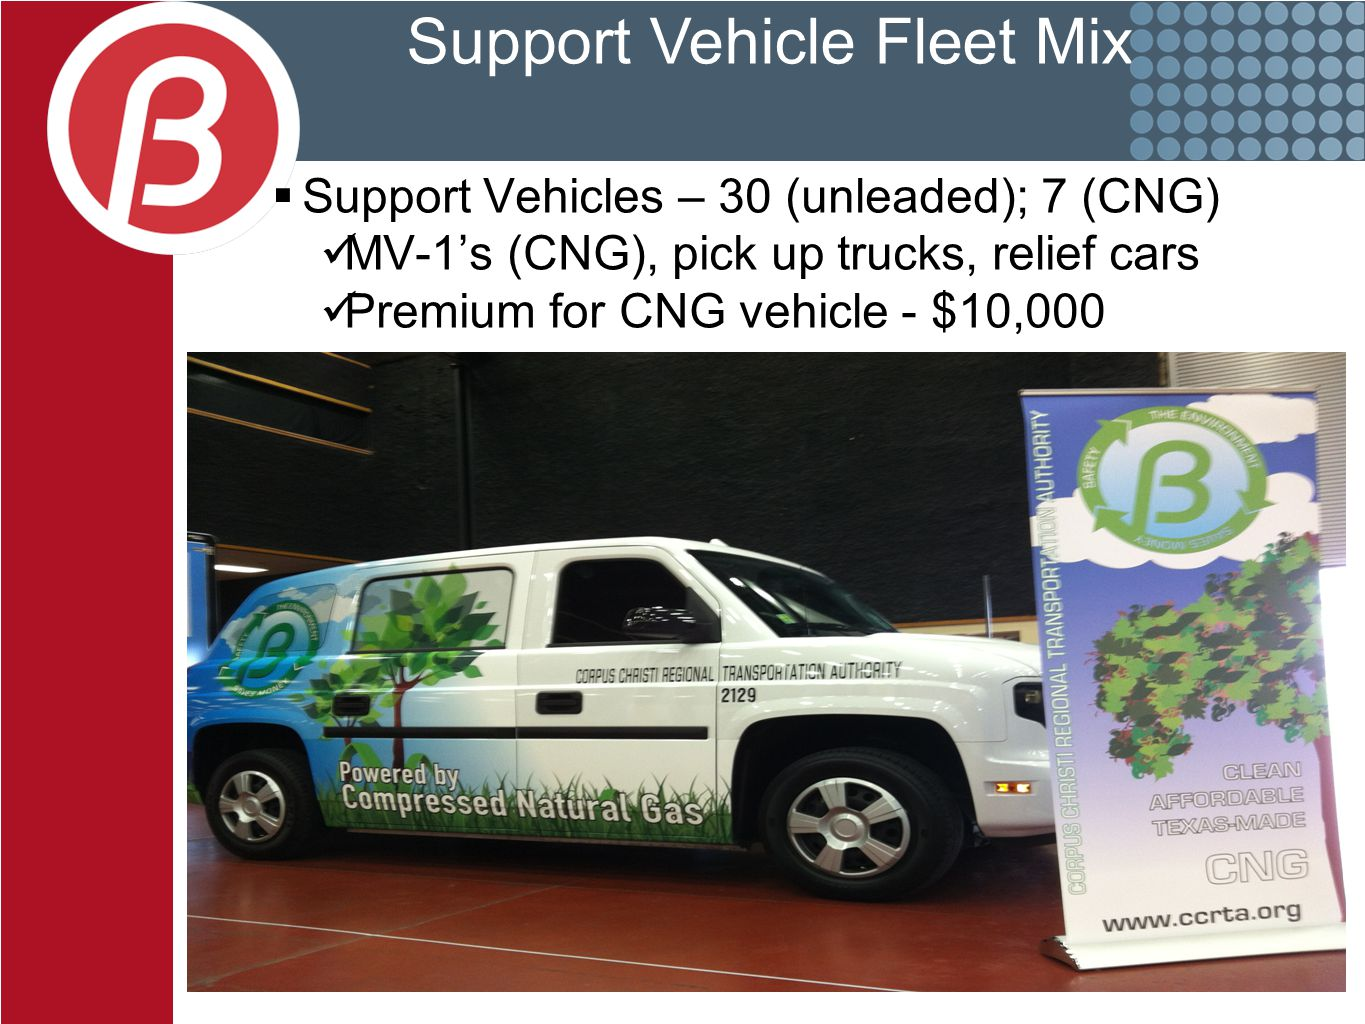 Support Vehicle Fleet Mix  Support Vehicles – 30 (unleaded); 7 (CNG) MV-1's (CNG), pick up trucks, relief cars Premium for CNG vehicle - $10,000